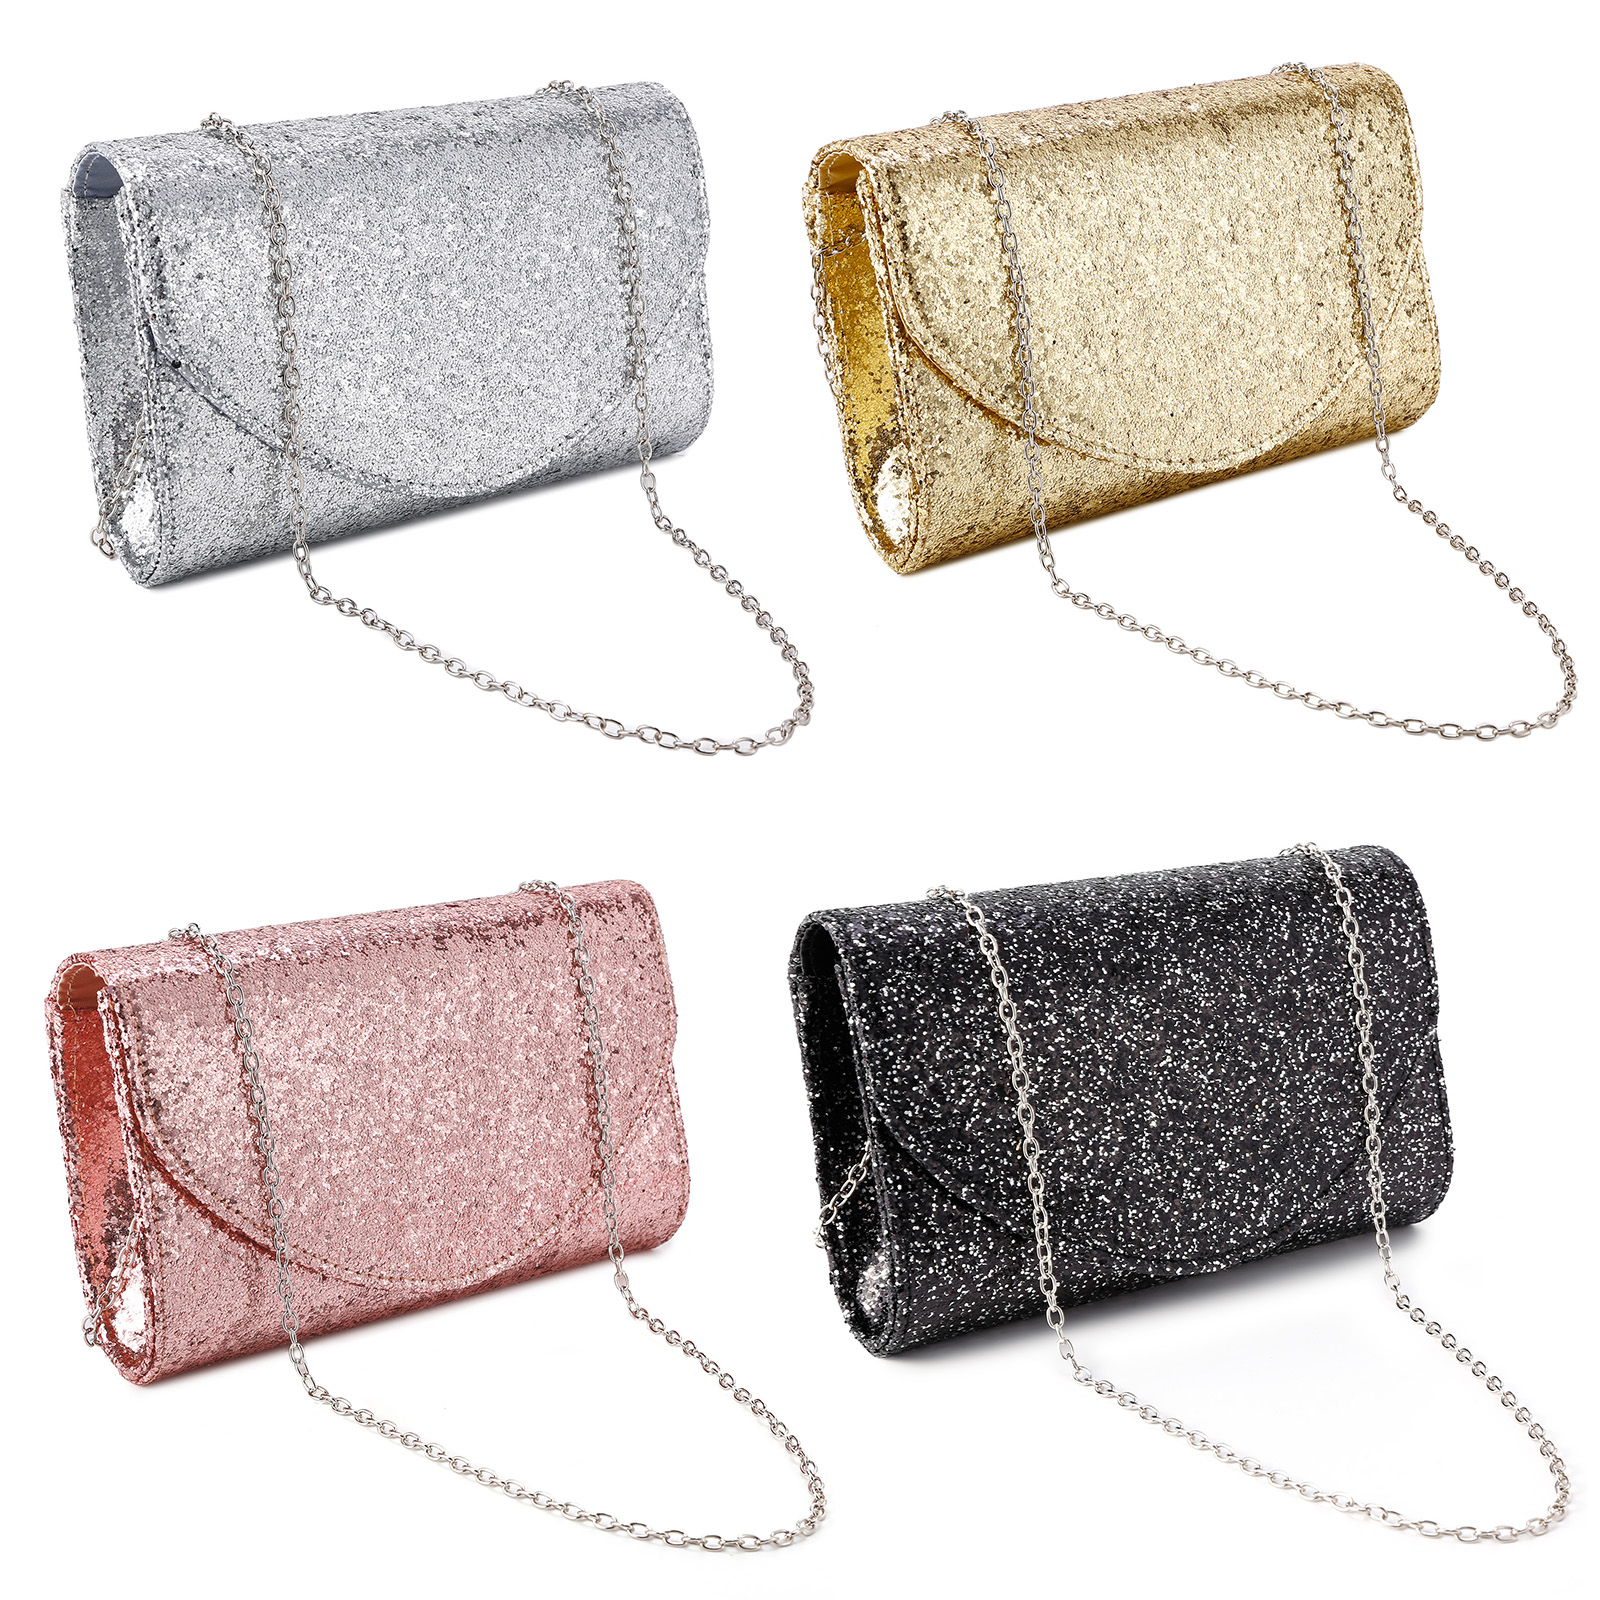 06a5876cb8 Image is loading Women-Lady-Glitter-Evening-Party-Clutch-Messenger-Chain-